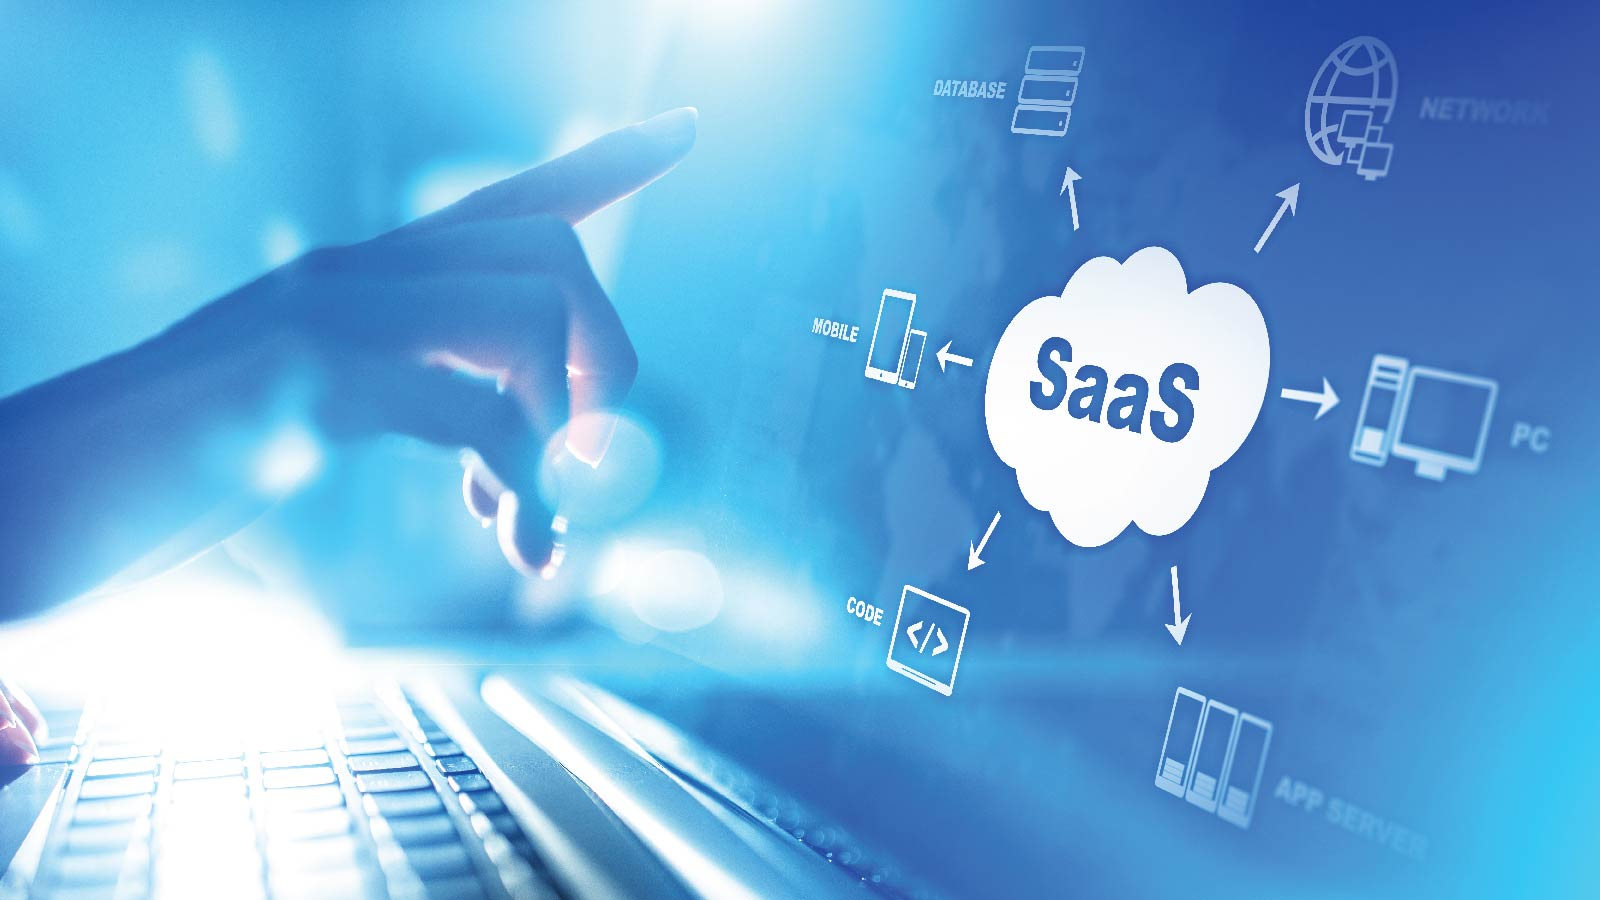 SaaS applications Is it possible for enterprises to have full control over them